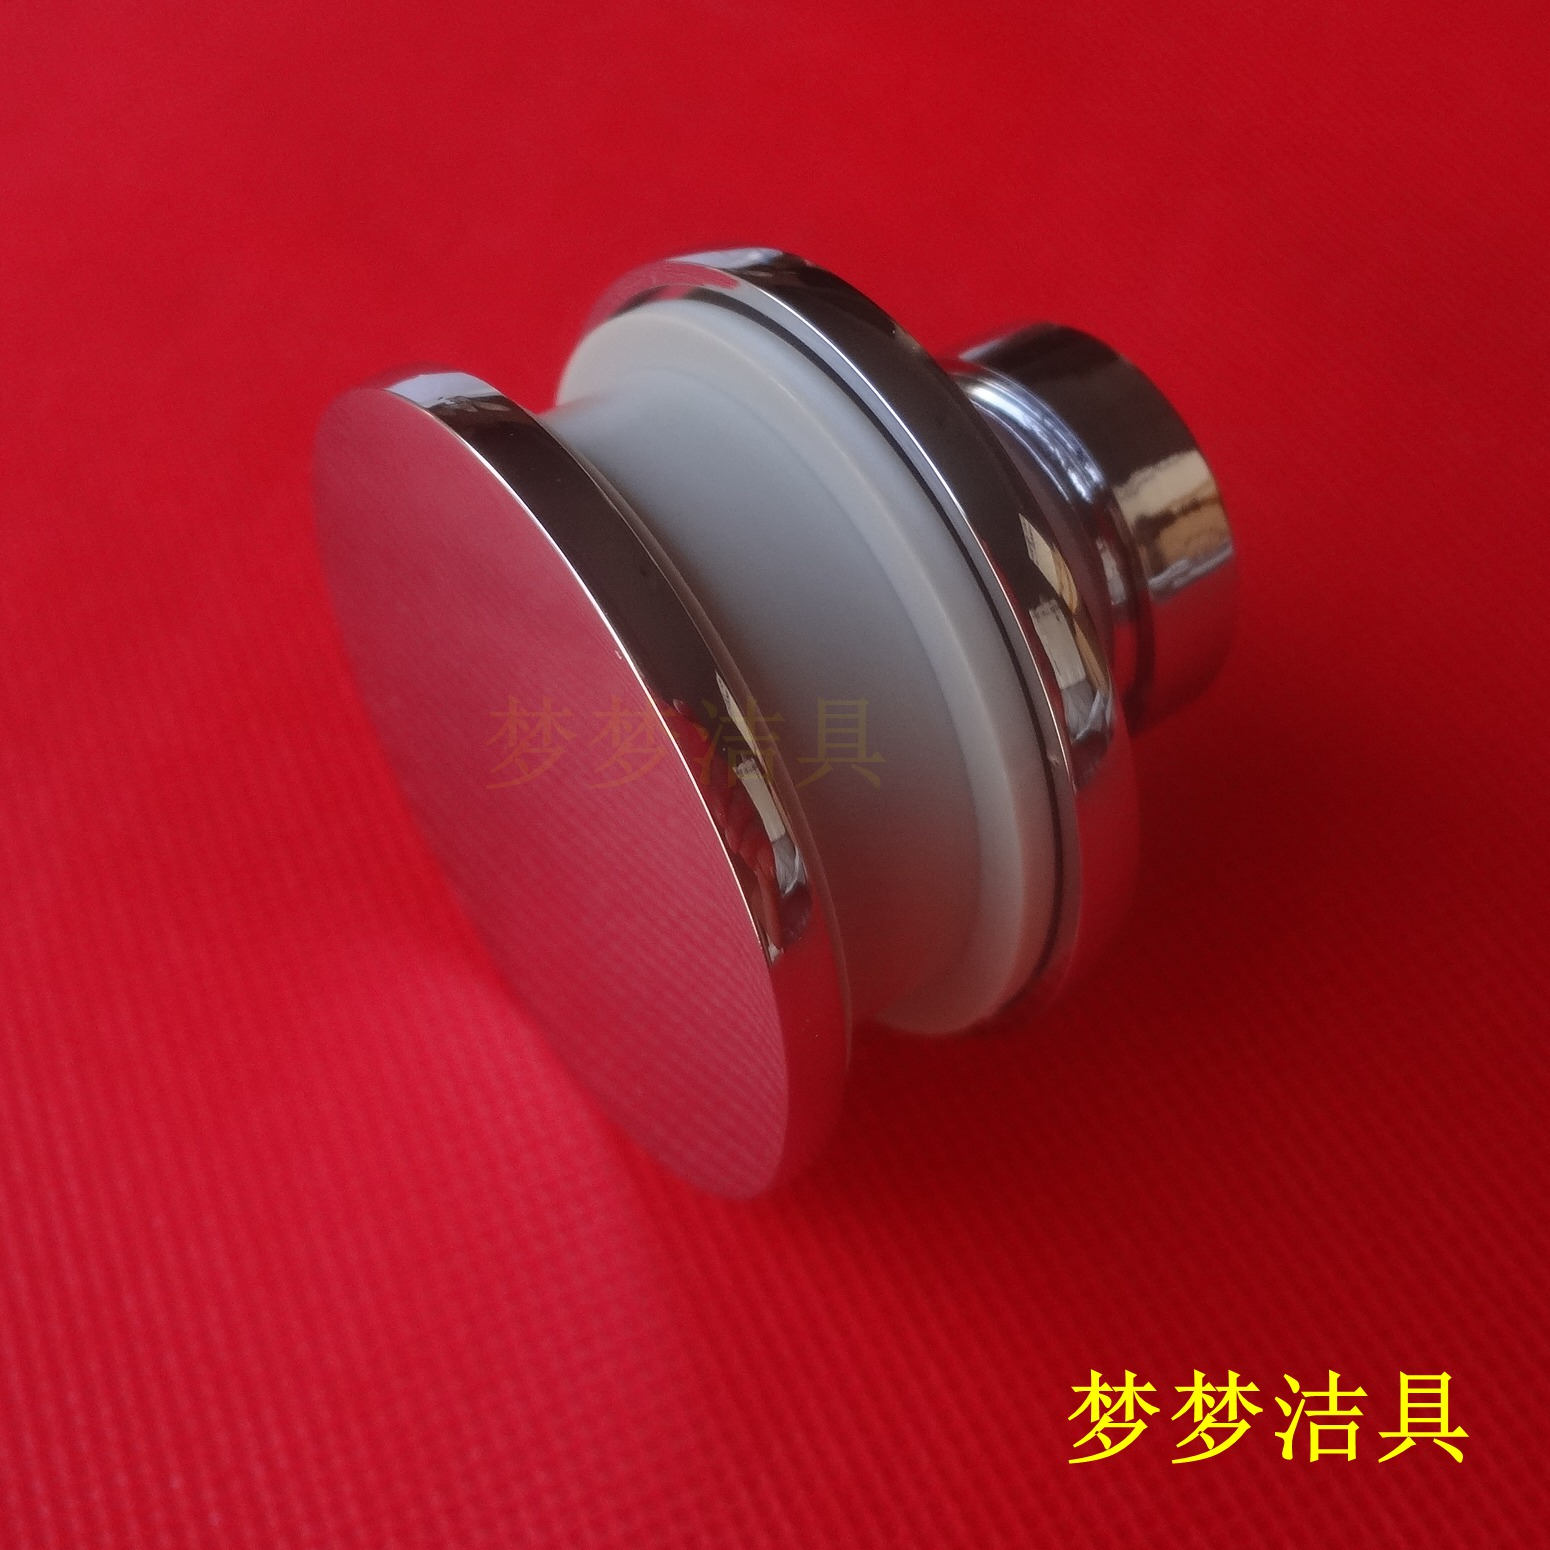 Shower room pulley old fashioned shower pulley glass sliding door hanging wheel big flute pulley roller wheels 3d printer flat type big plastic wheel pulley with ball bearings passive round wheel idler pulley gear perlin wheel